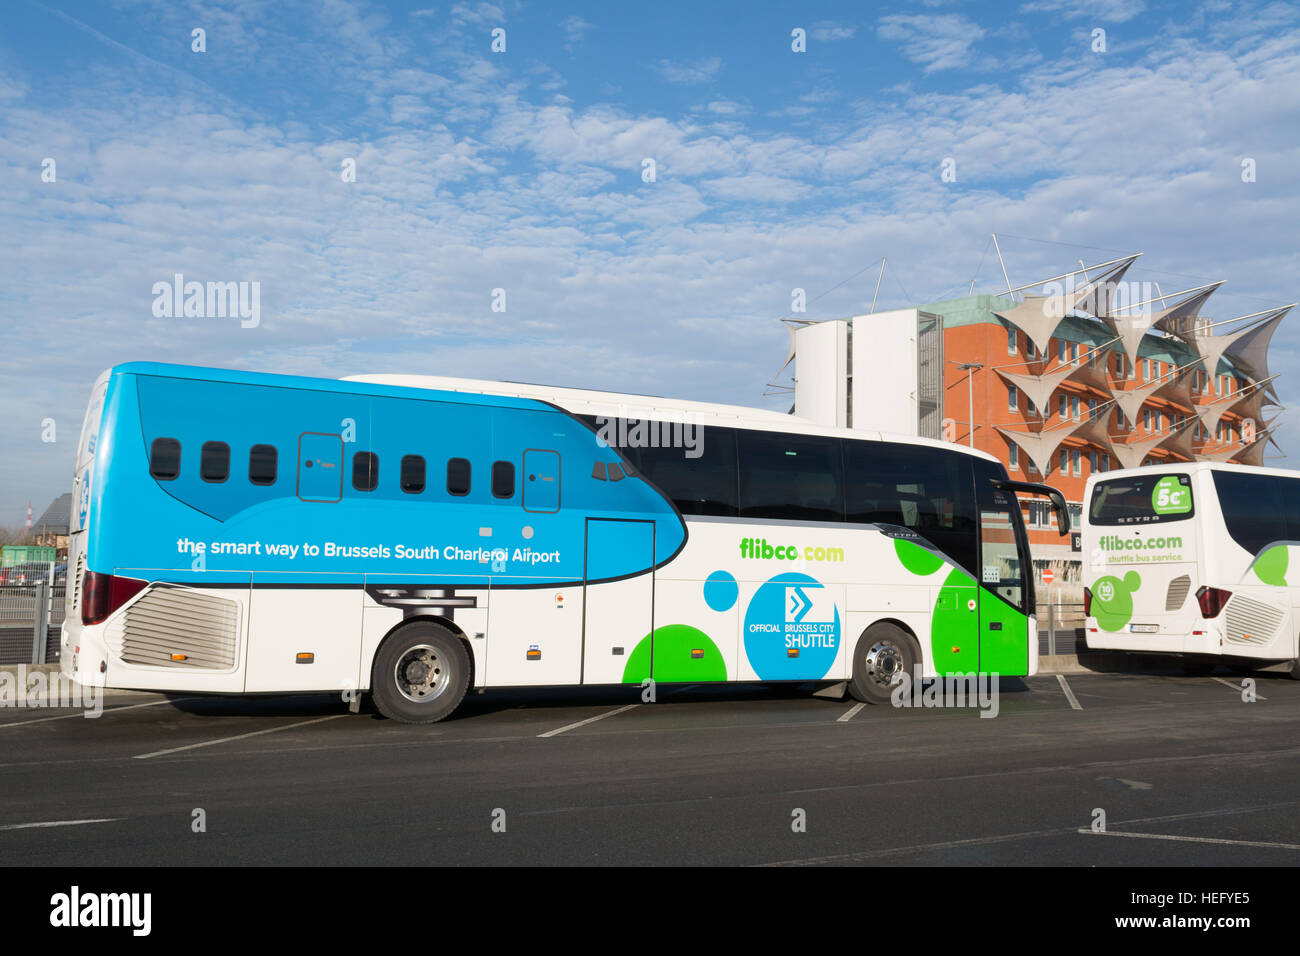 Charleroi Brussels coach transfer  at Charleroi airport south brussels, Belgium, Europe - Stock Image